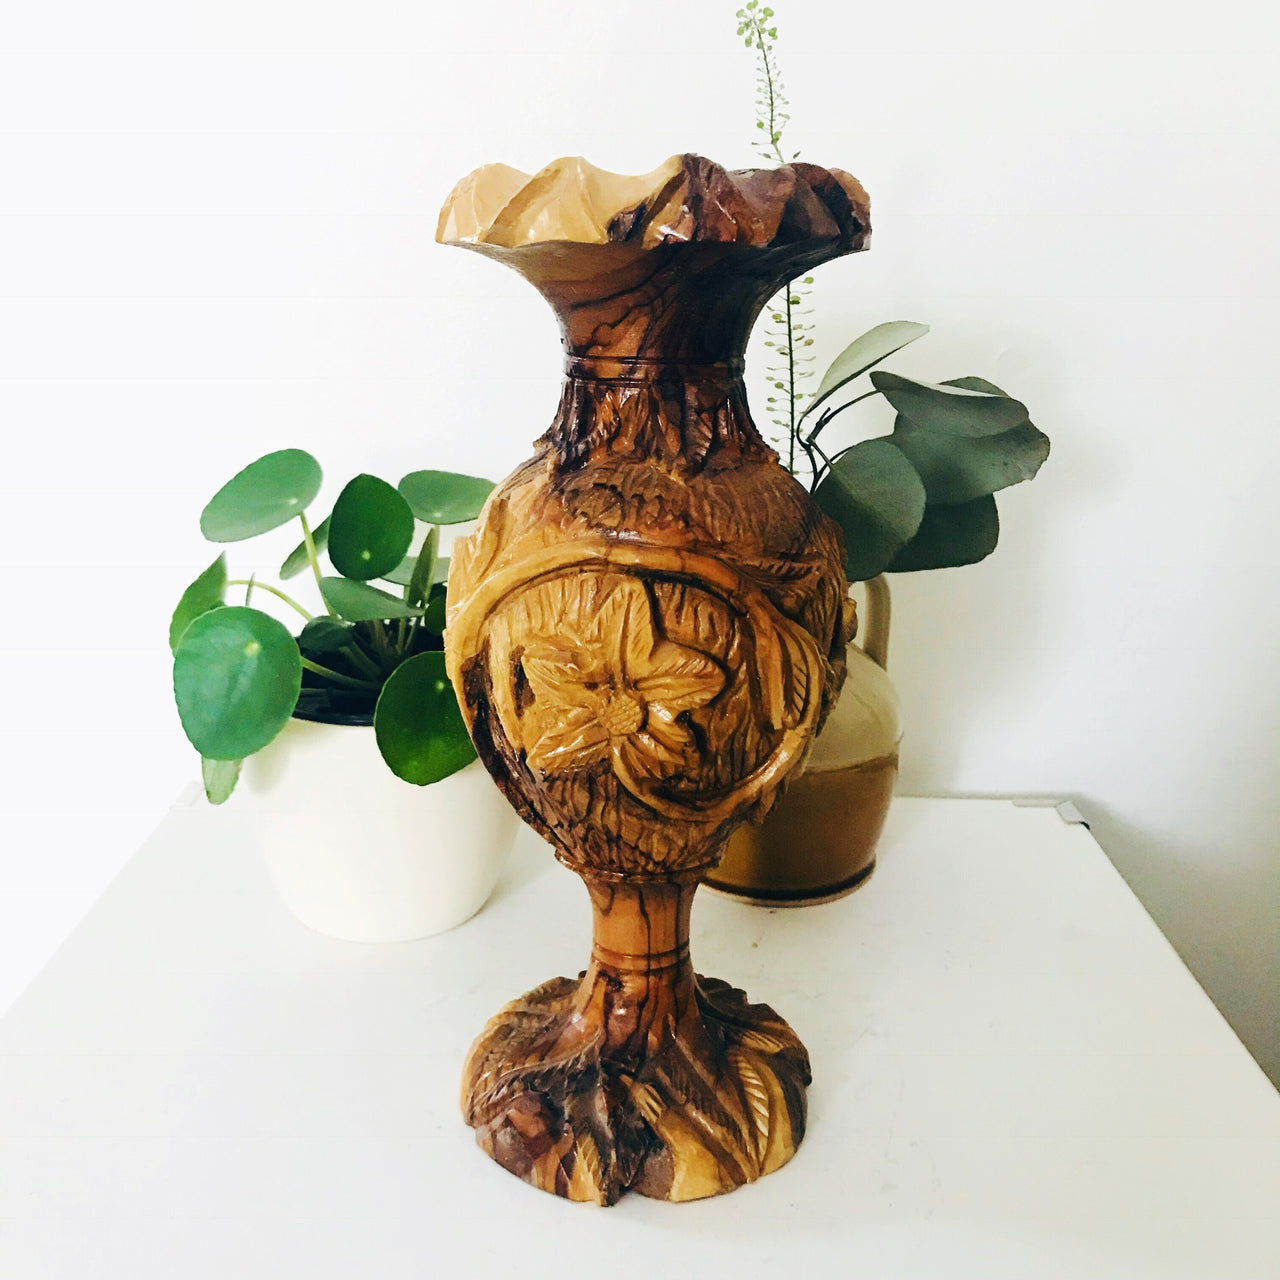 Carved Wood Candlestick Holder $25